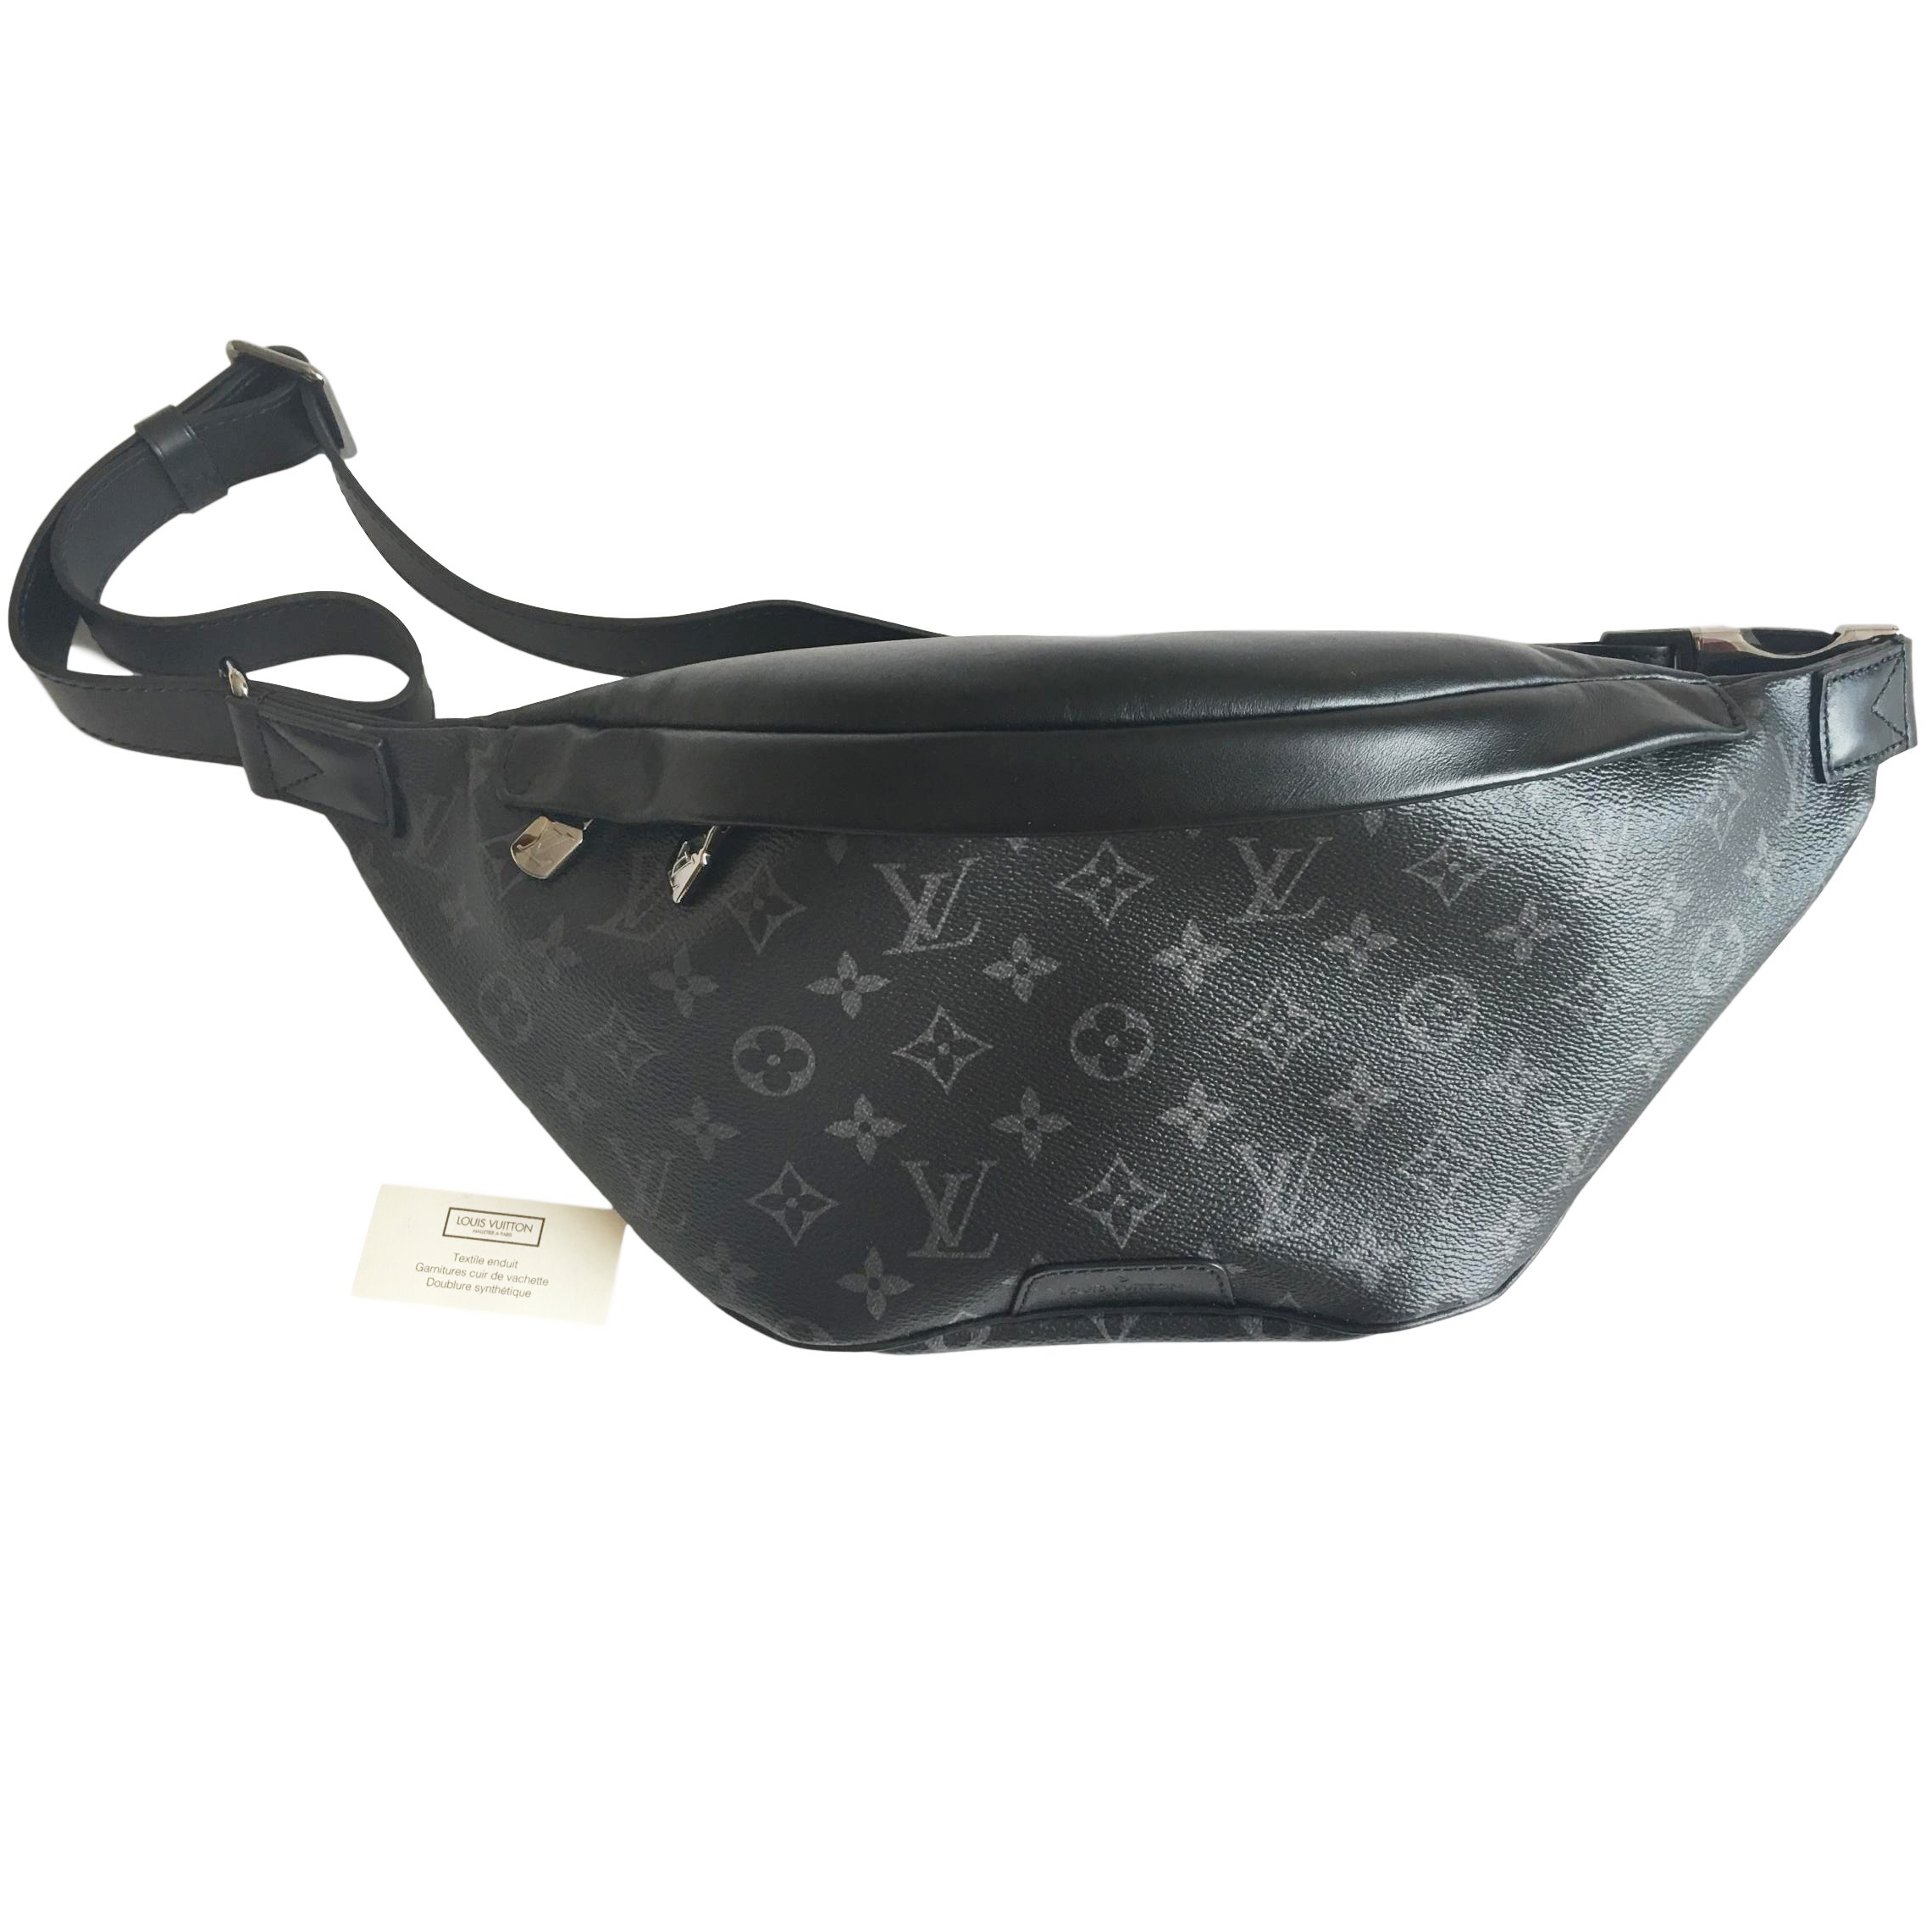 f6242078d45f5 Louis Vuitton Discovery Bumbag